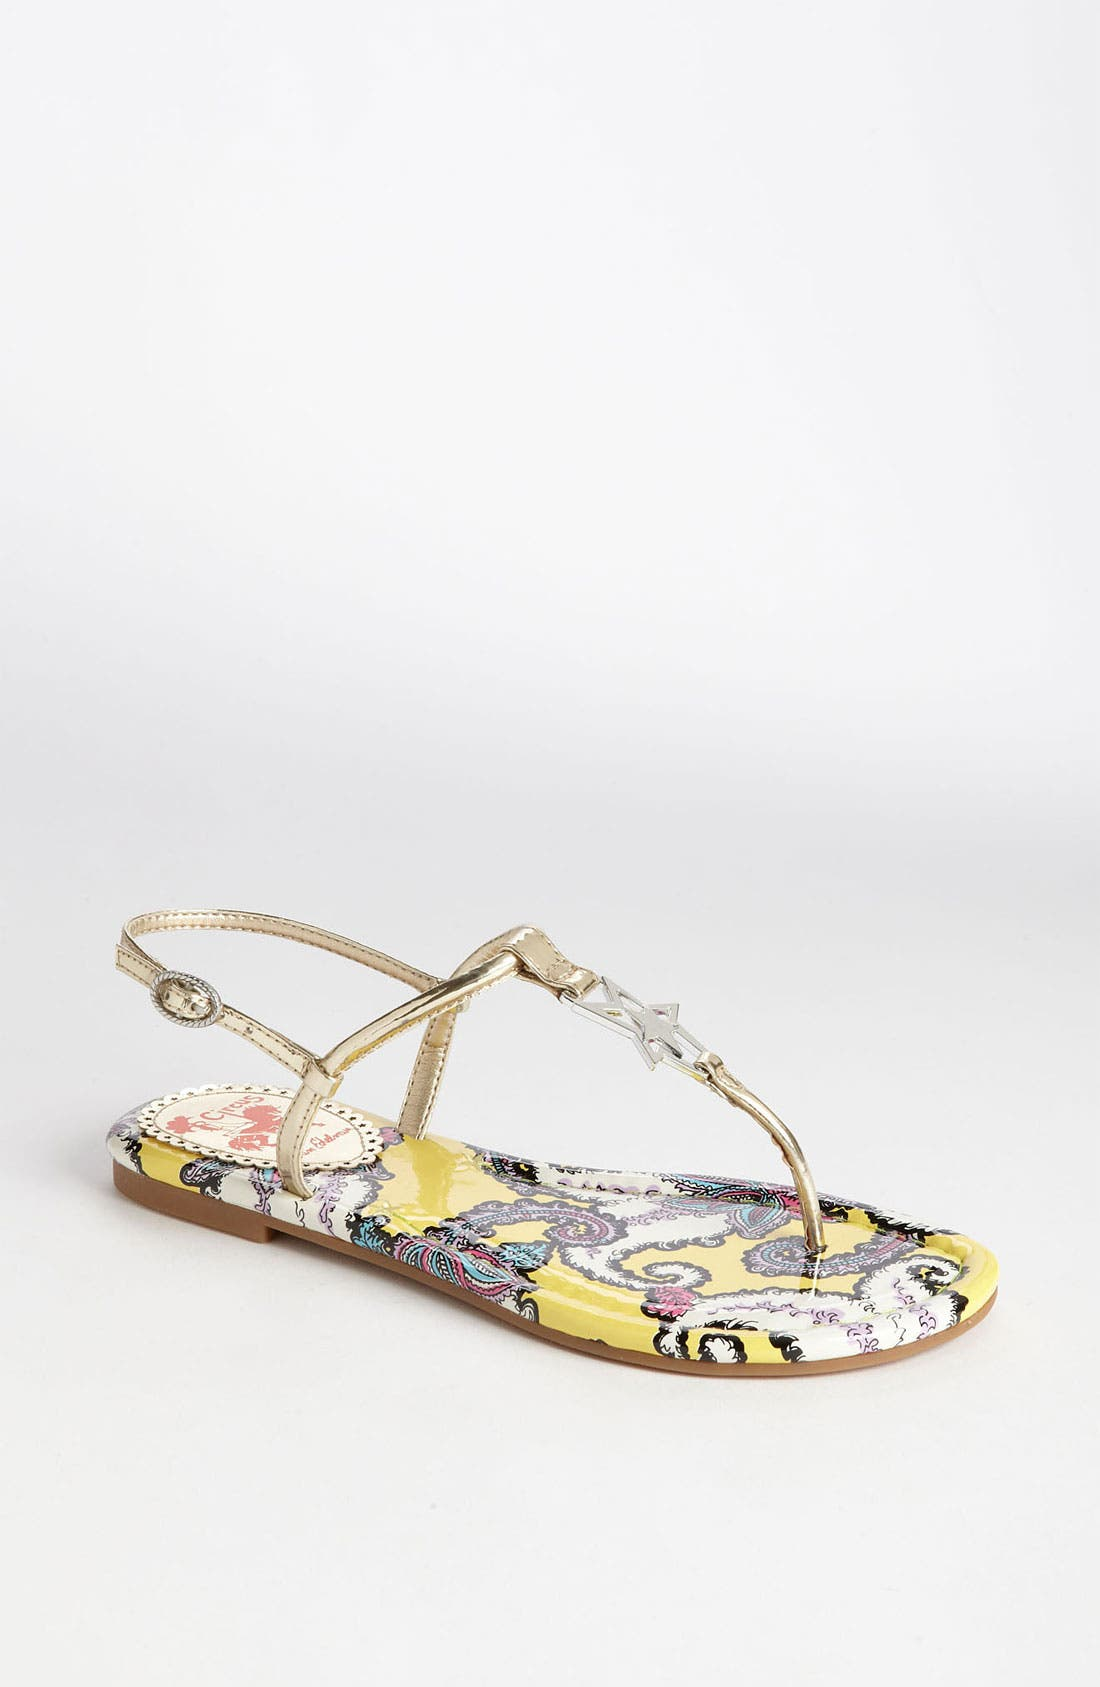 Alternate Image 1 Selected - Circus by Sam Edelman 'Jaela' Sandal